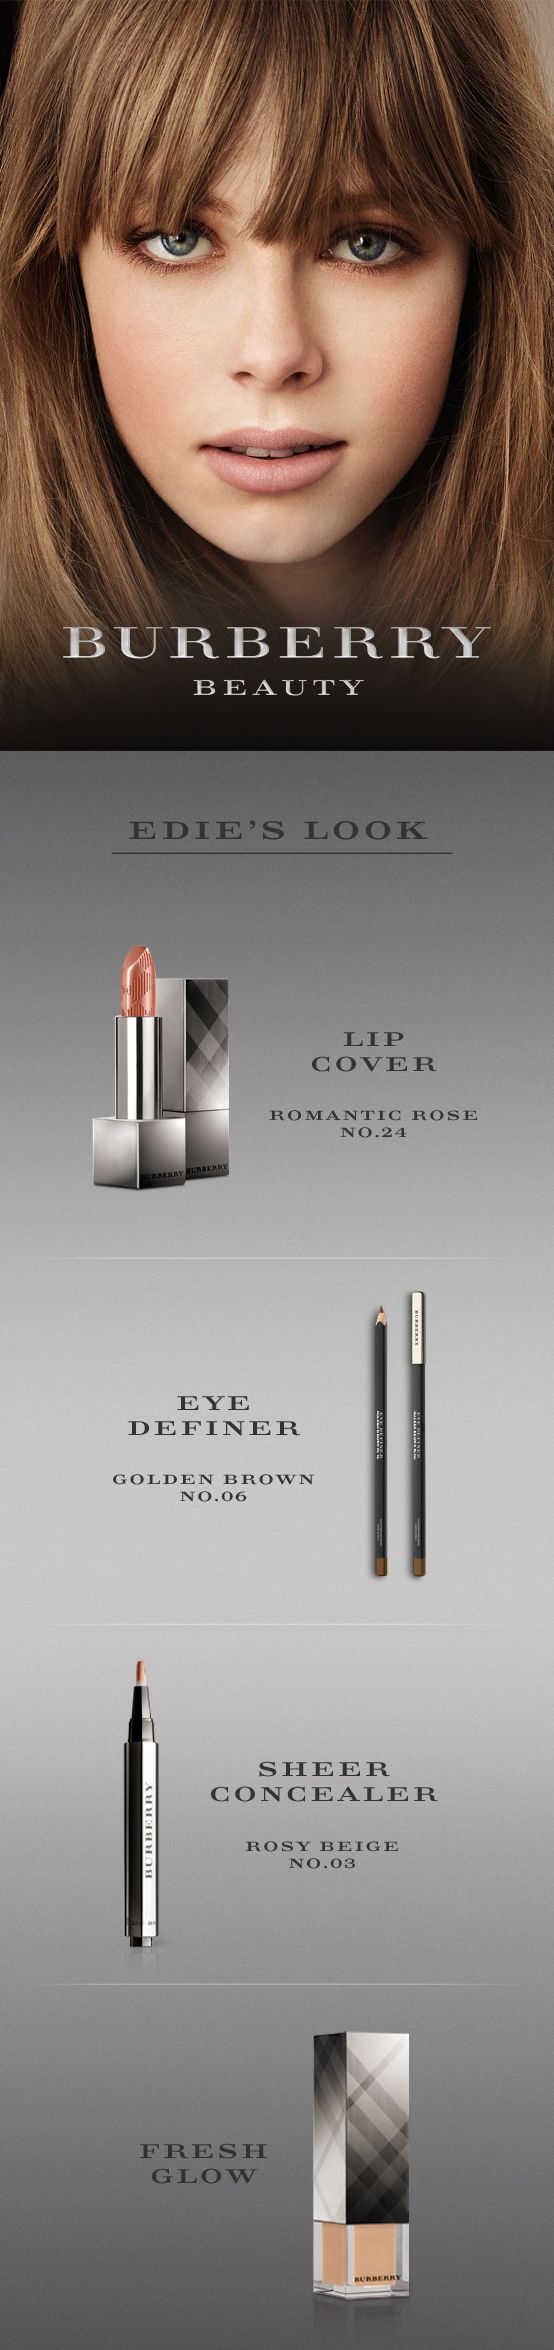 #Burberry Beauty - Edie's Look  what color es is she wearing?!